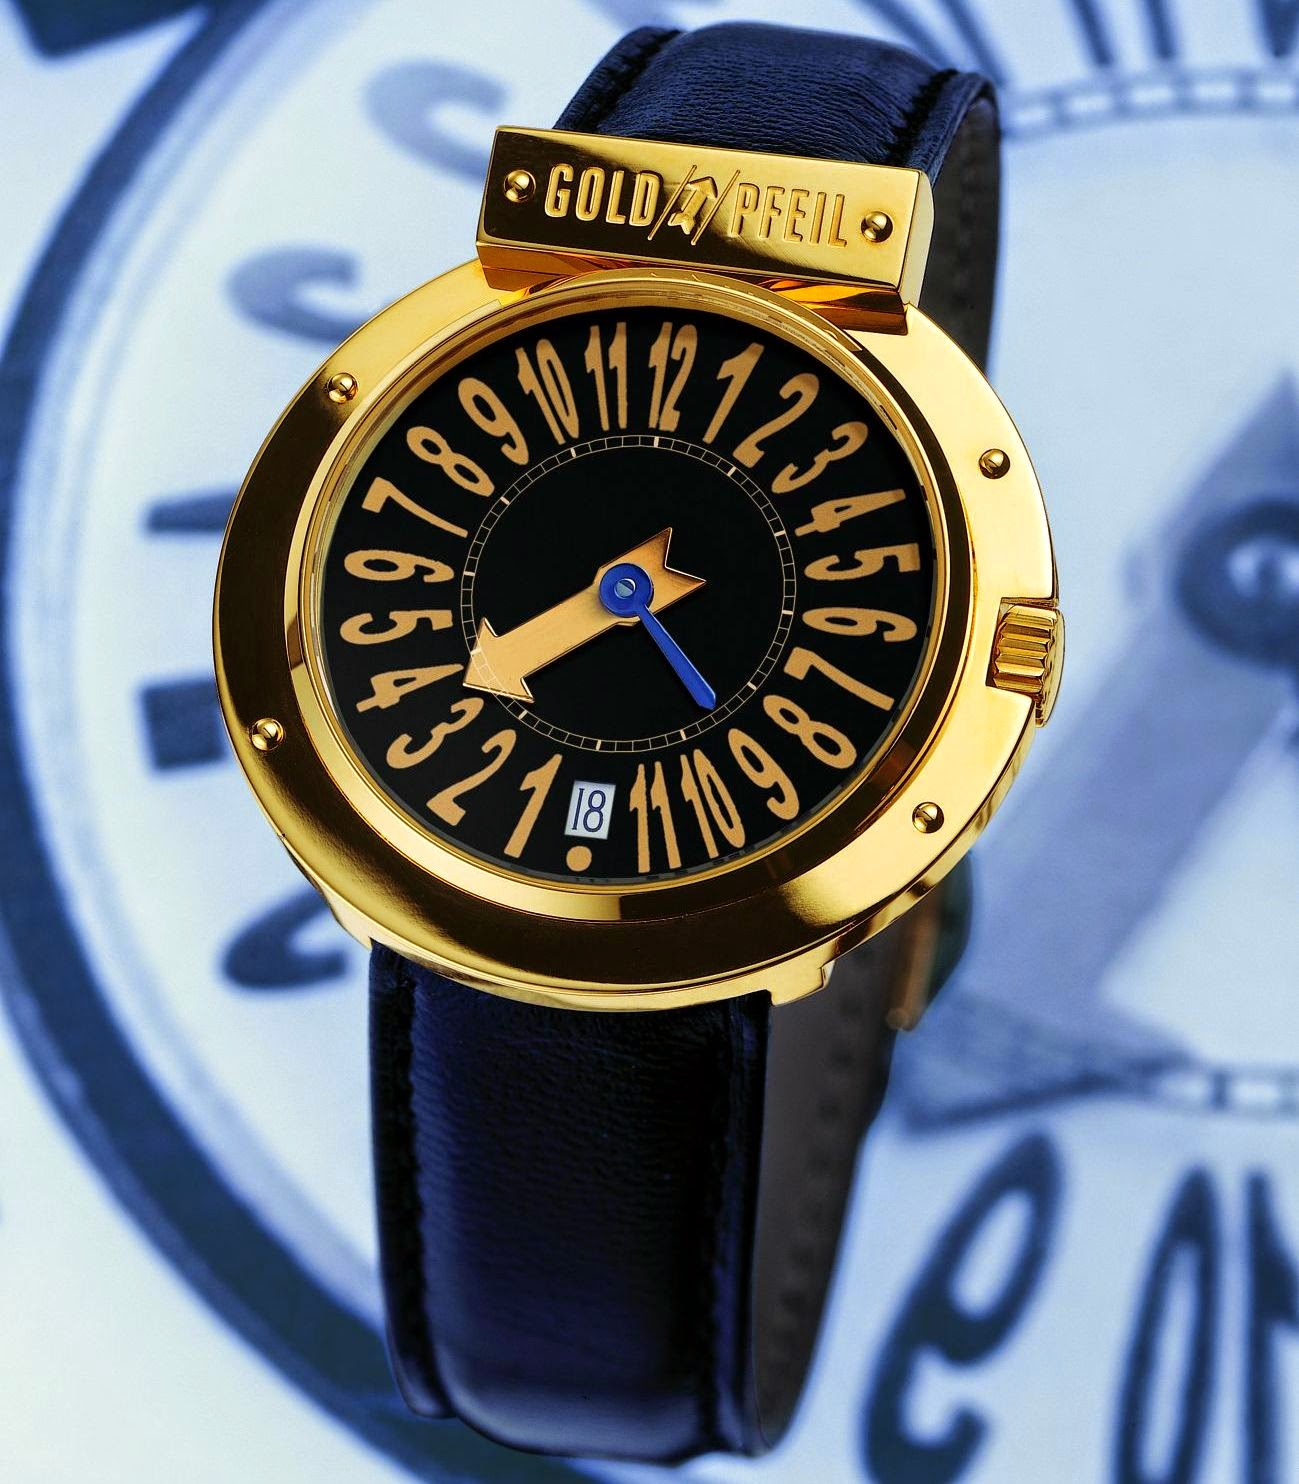 GOLDPFEIL GENEVE Pupitre Watch by Svend Andersen, Exclusive Collection